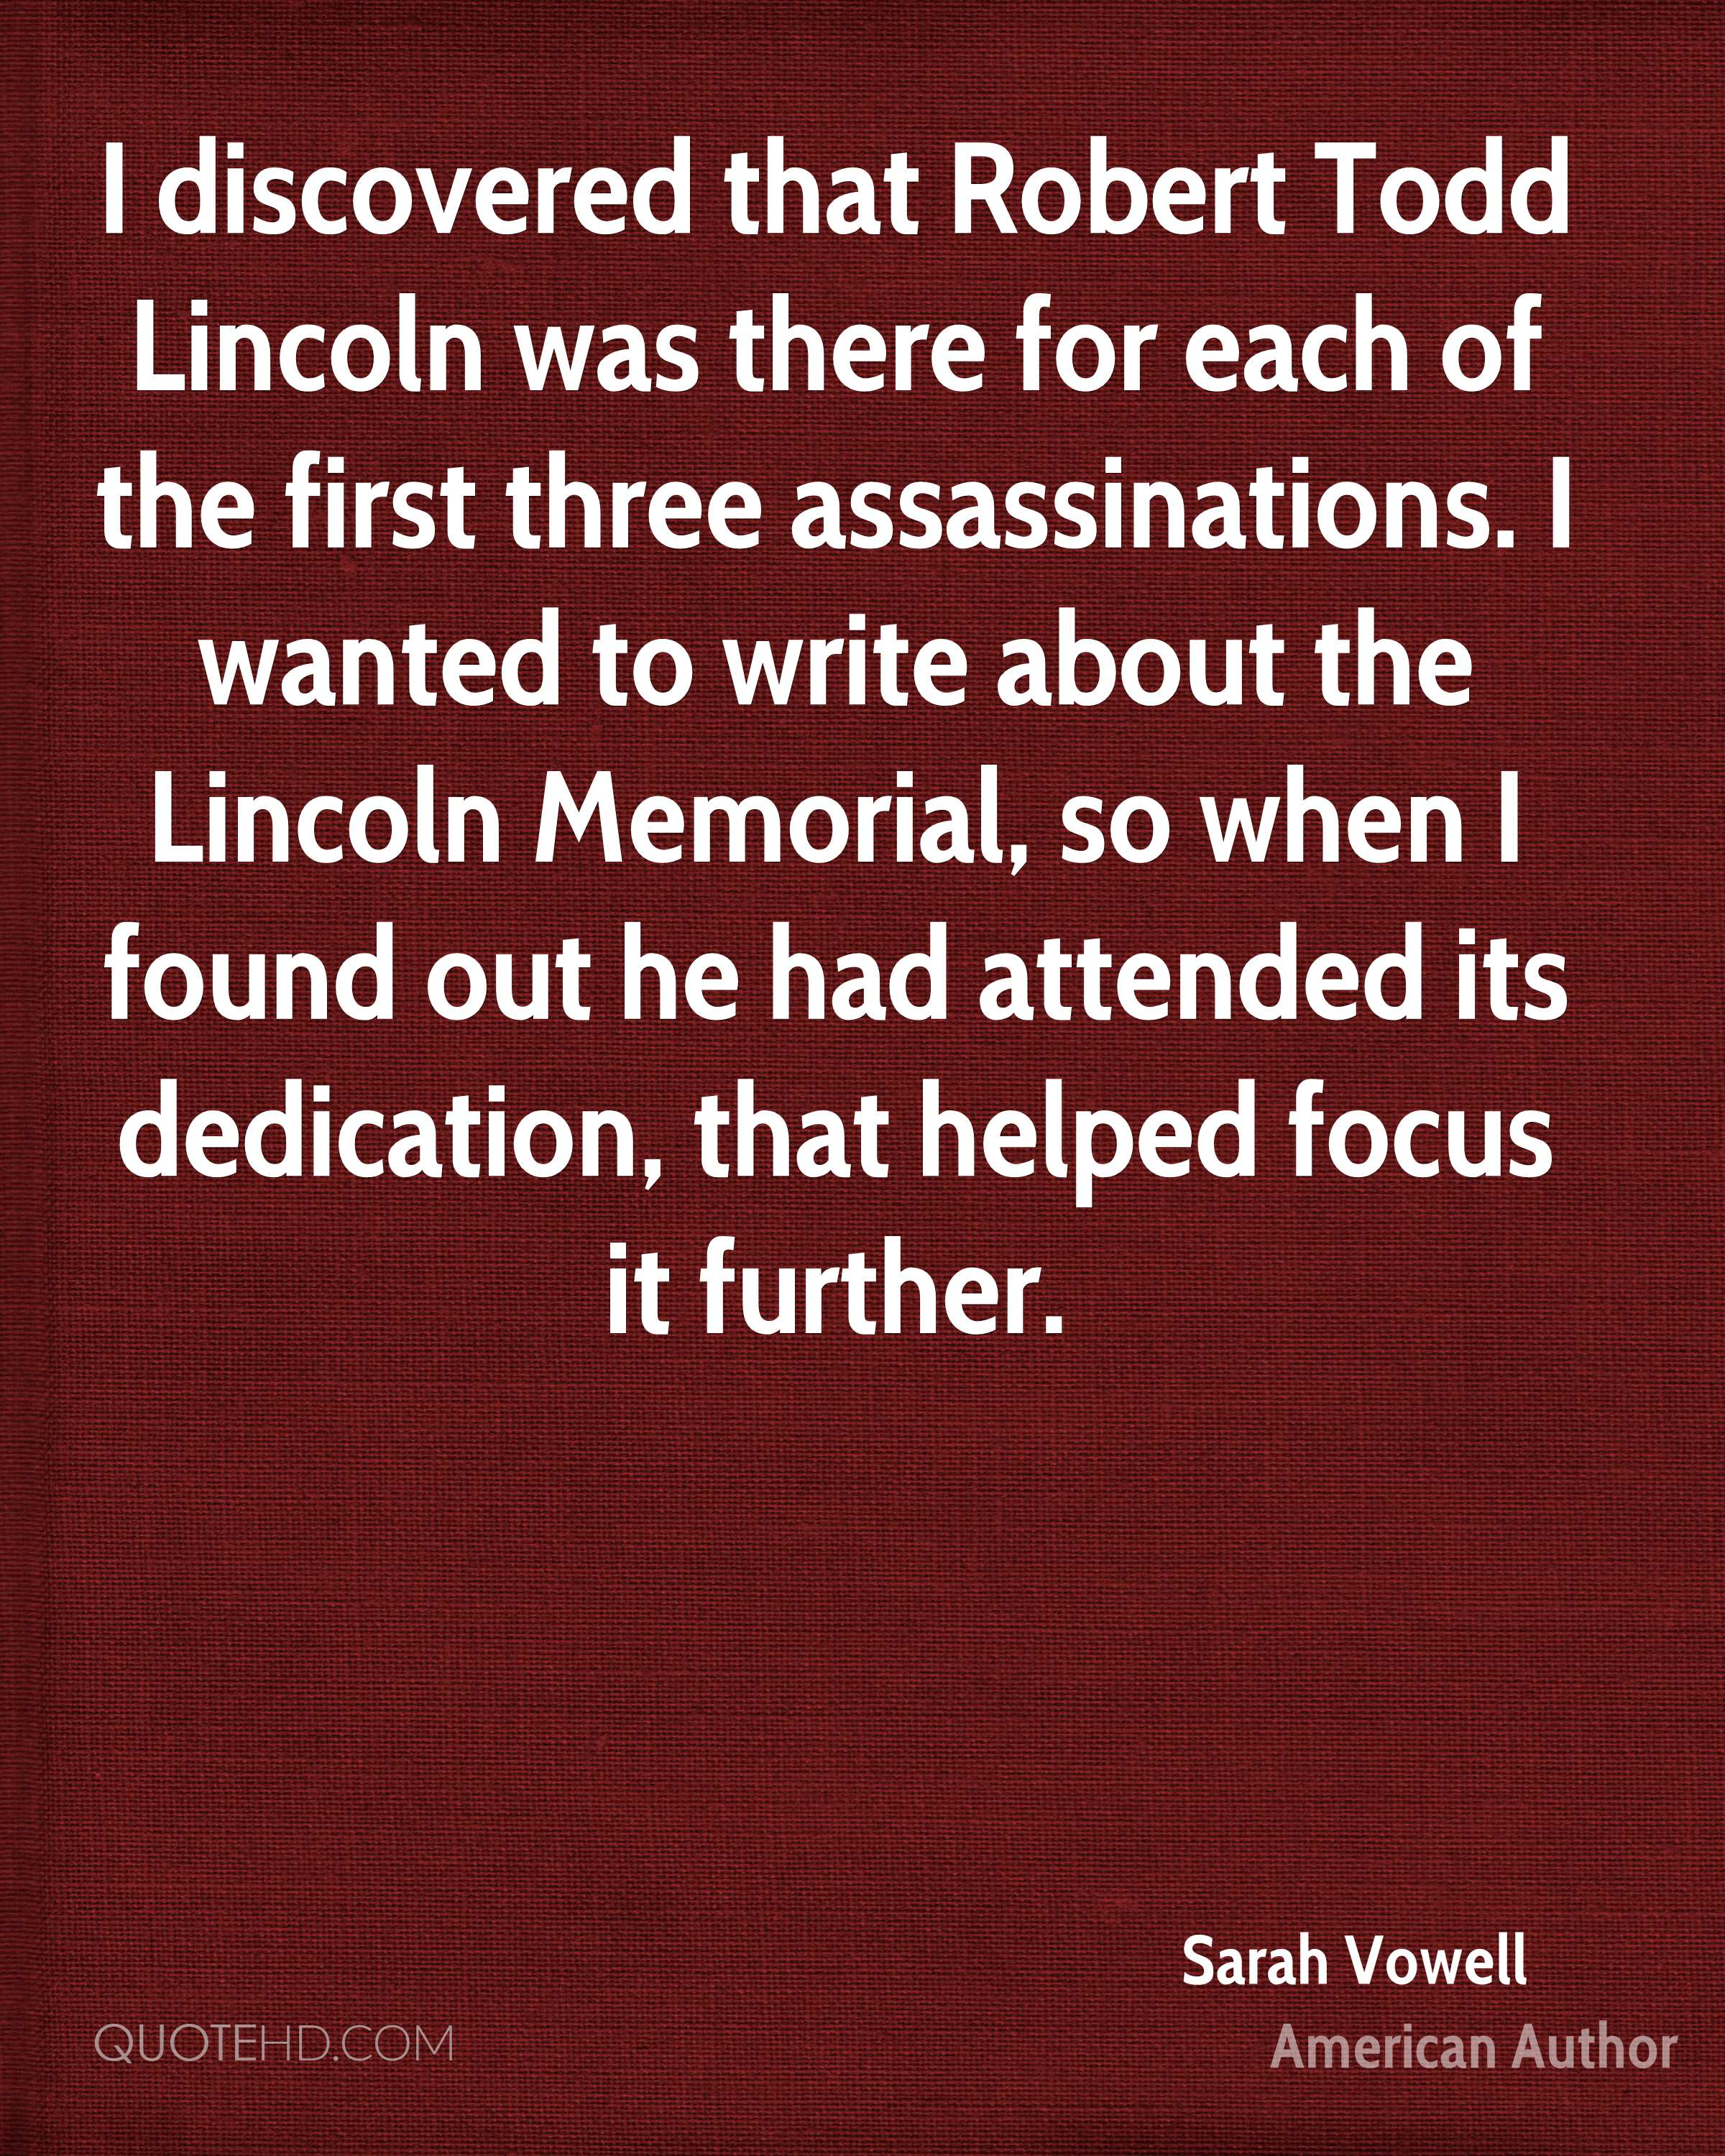 I discovered that Robert Todd Lincoln was there for each of the first three assassinations. I wanted to write about the Lincoln Memorial, so when I found out he had attended its dedication, that helped focus it further.